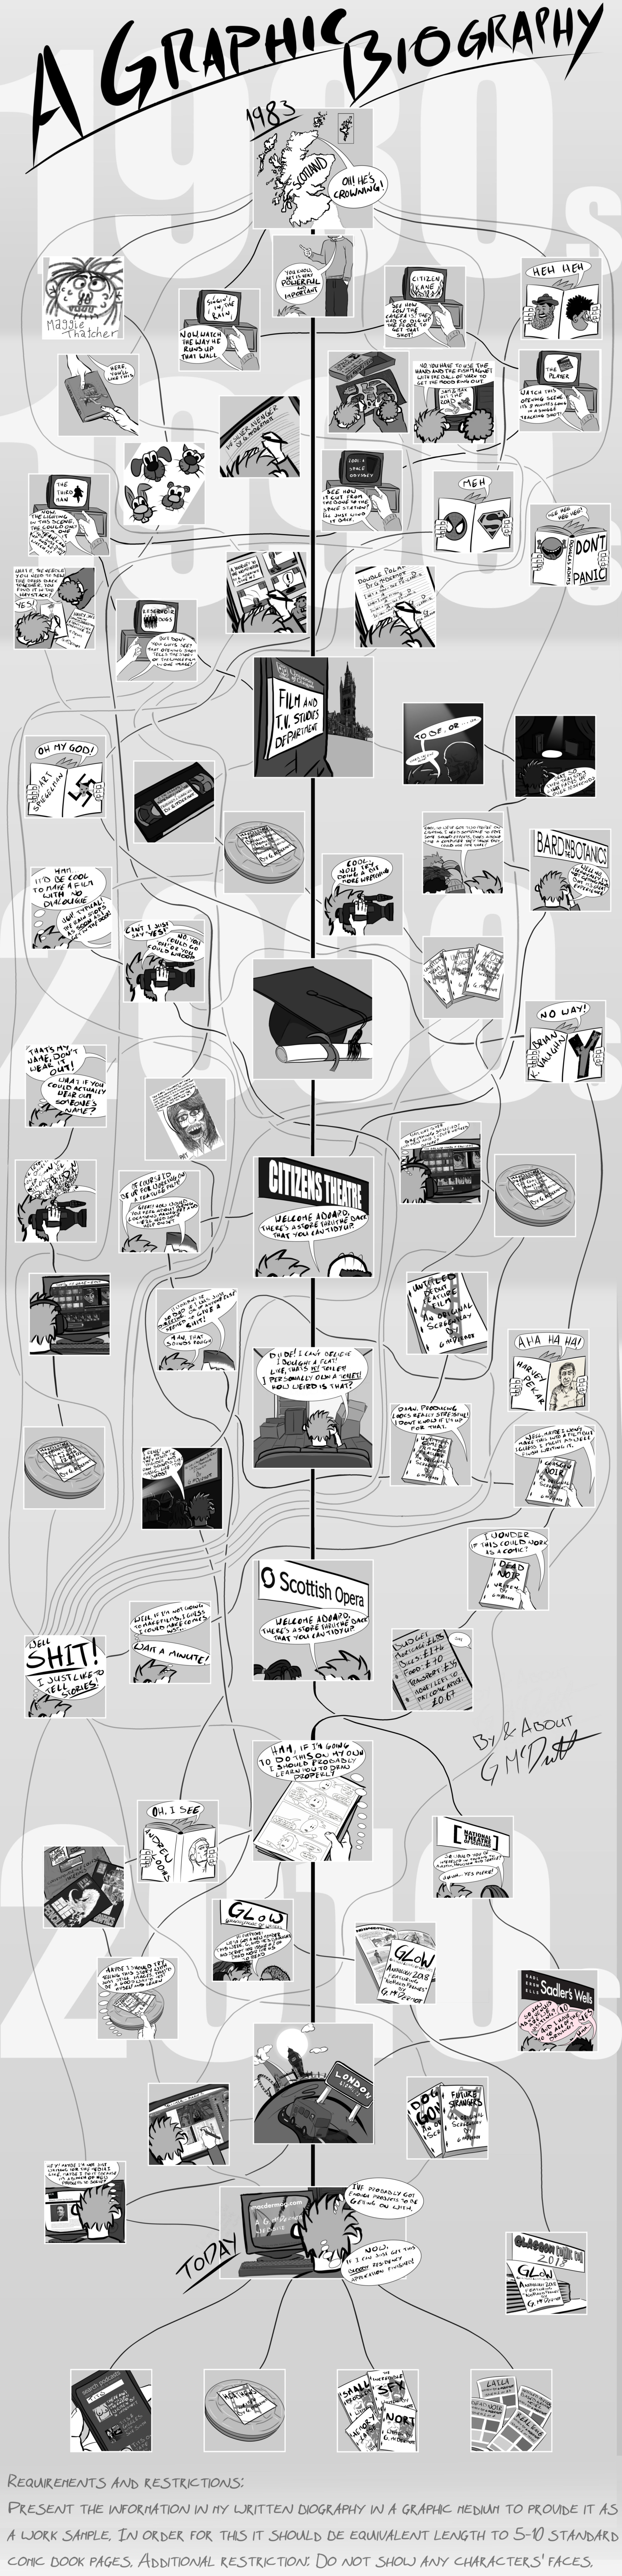 A Graphic Biography